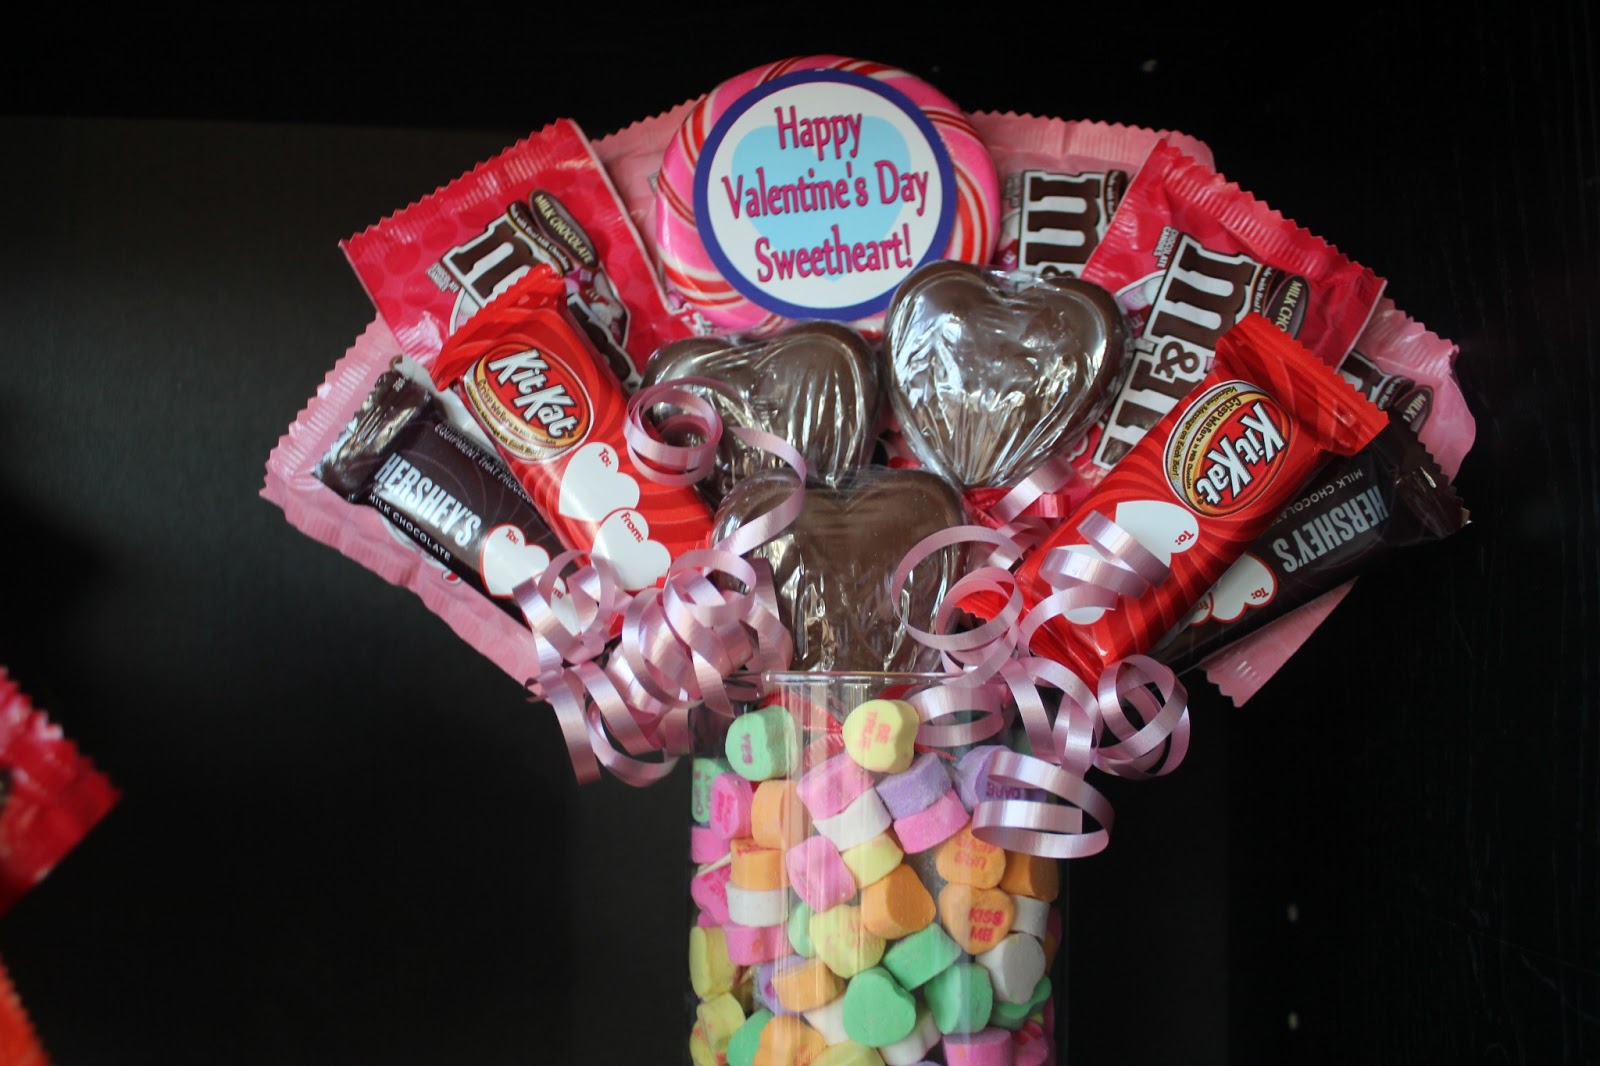 You Can Also Take A Big Vase And Put A Piece Of Styrofoam Down In It. Then  Take Conversation Hearts Or Other Candy And Fill It Around The Foam.